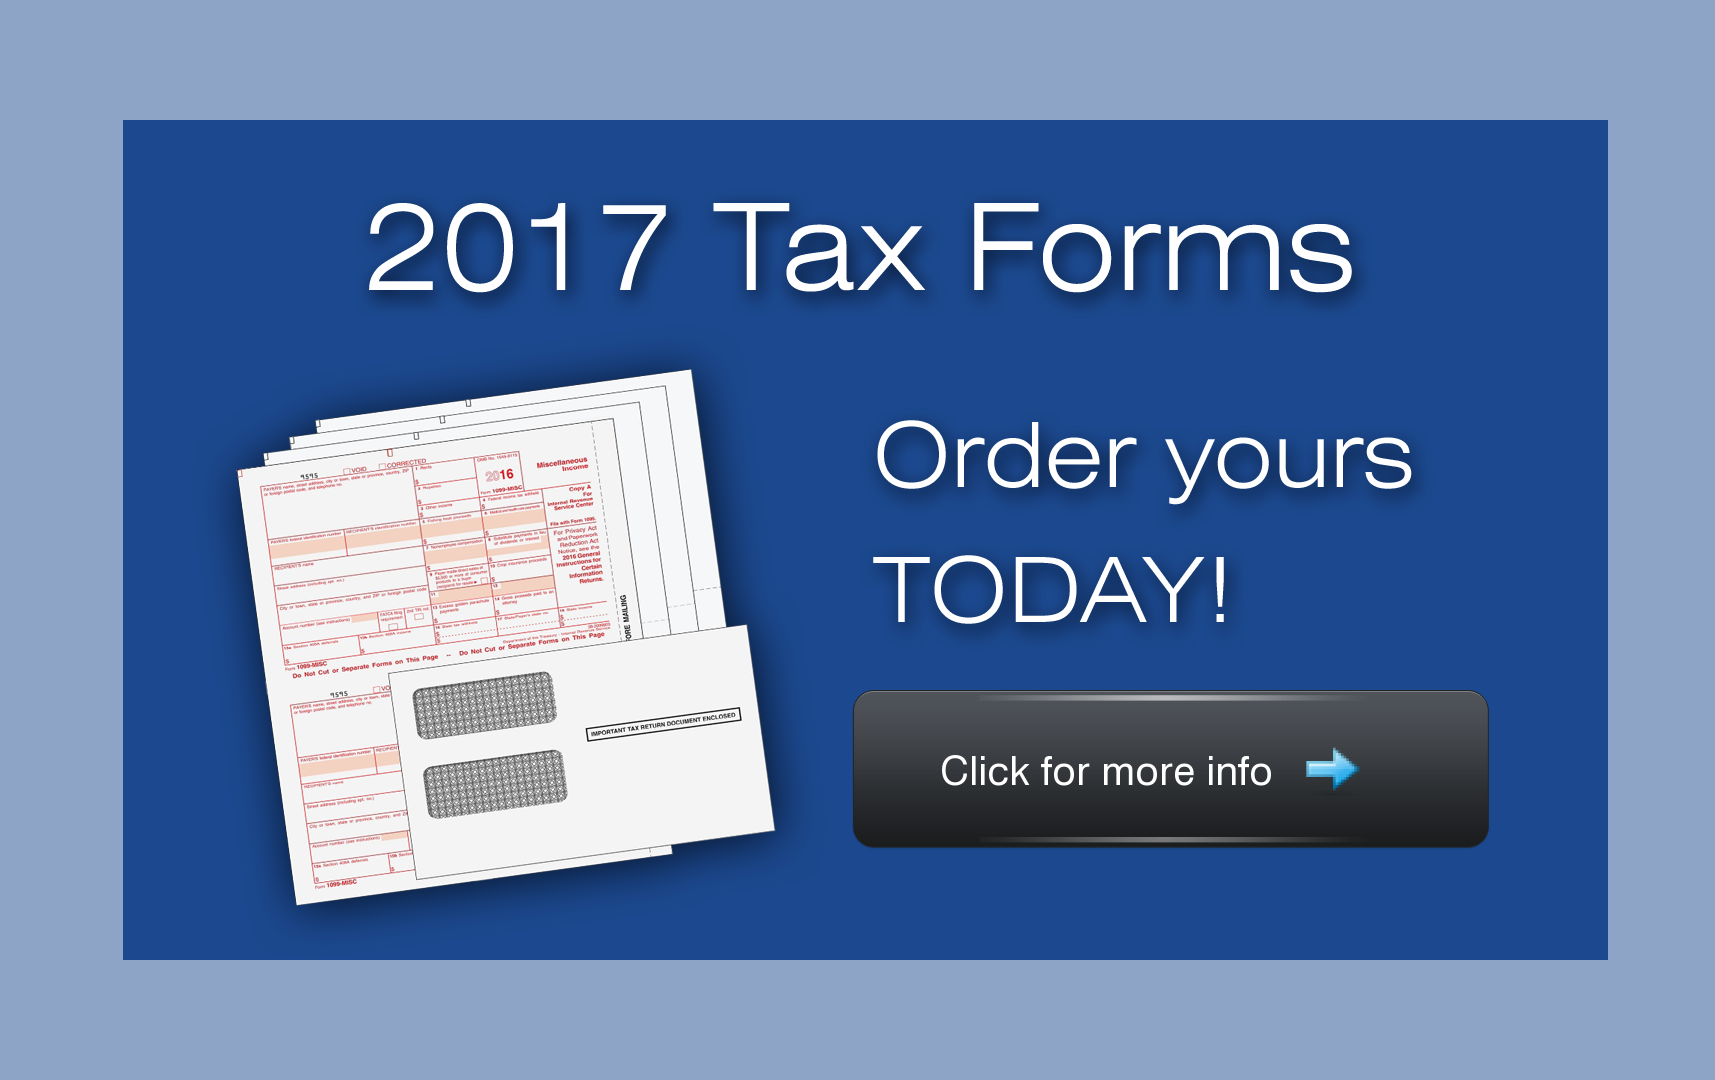 Click for more info on Tax Forms